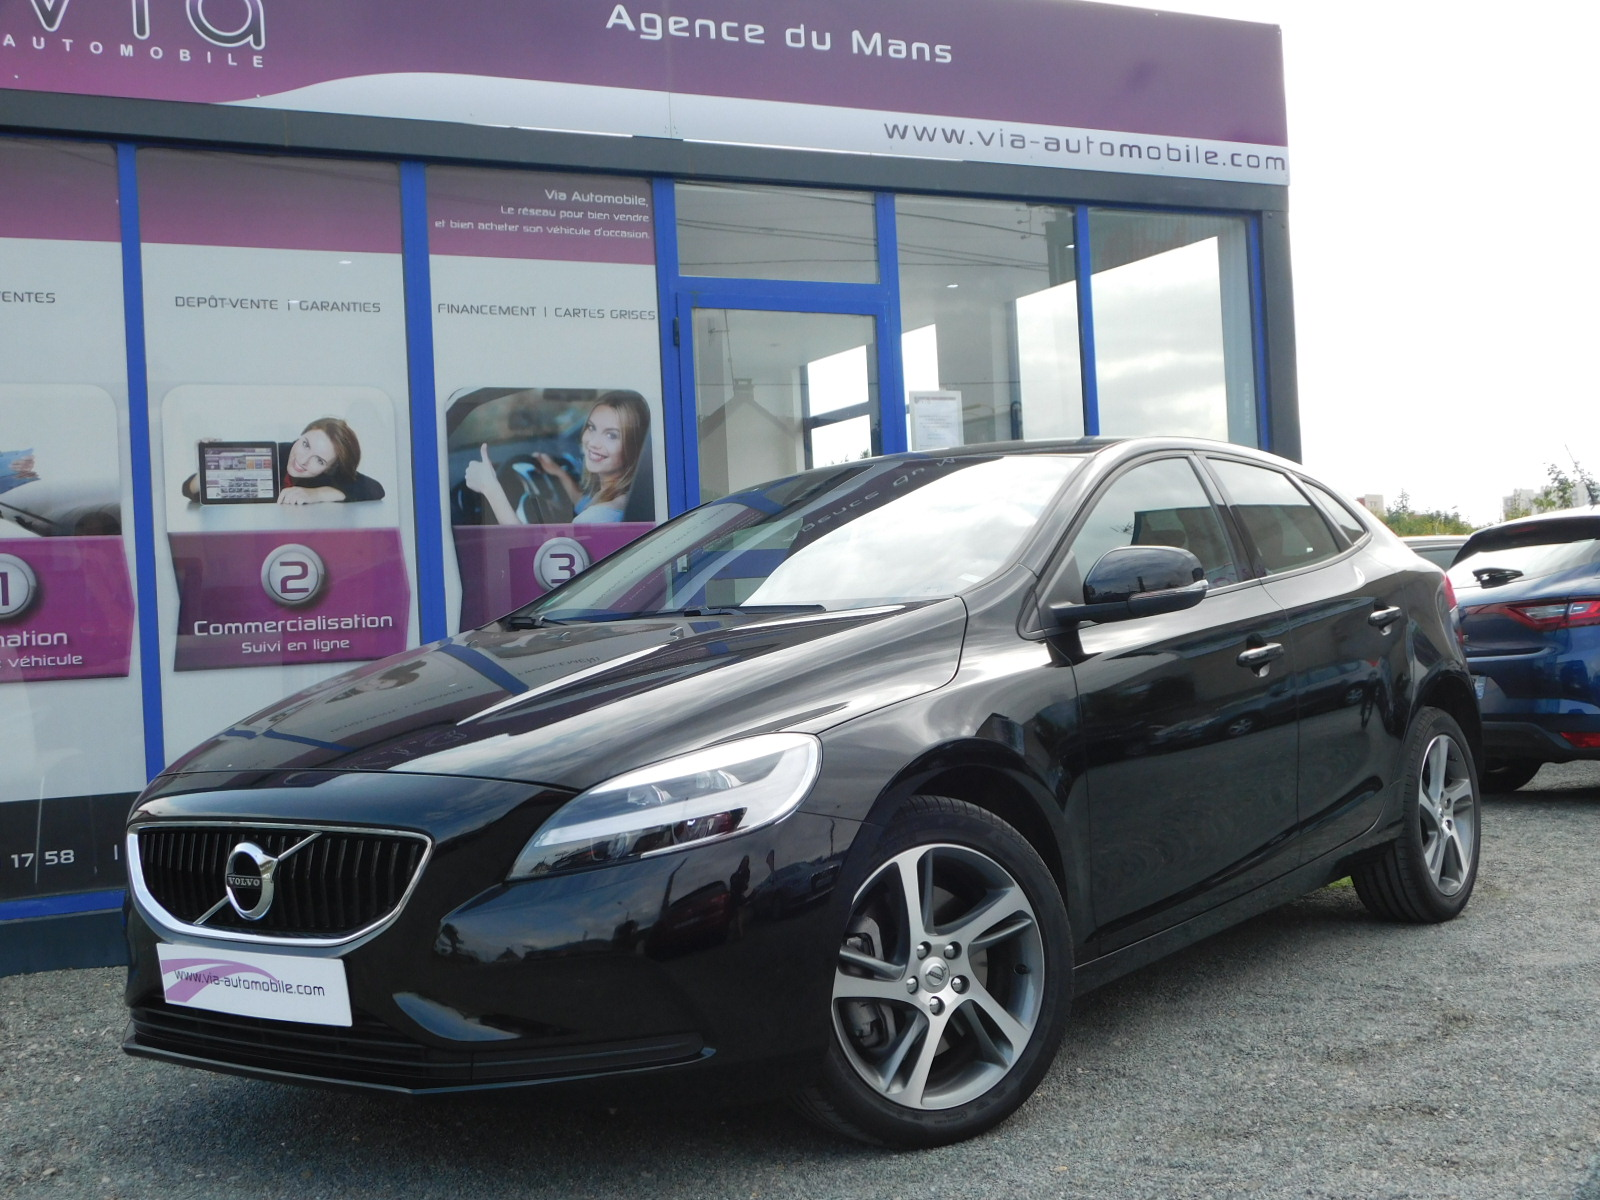 voiture volvo v40 d2 120 momentum business auto 4900km occasion diesel 2017 4900 km. Black Bedroom Furniture Sets. Home Design Ideas